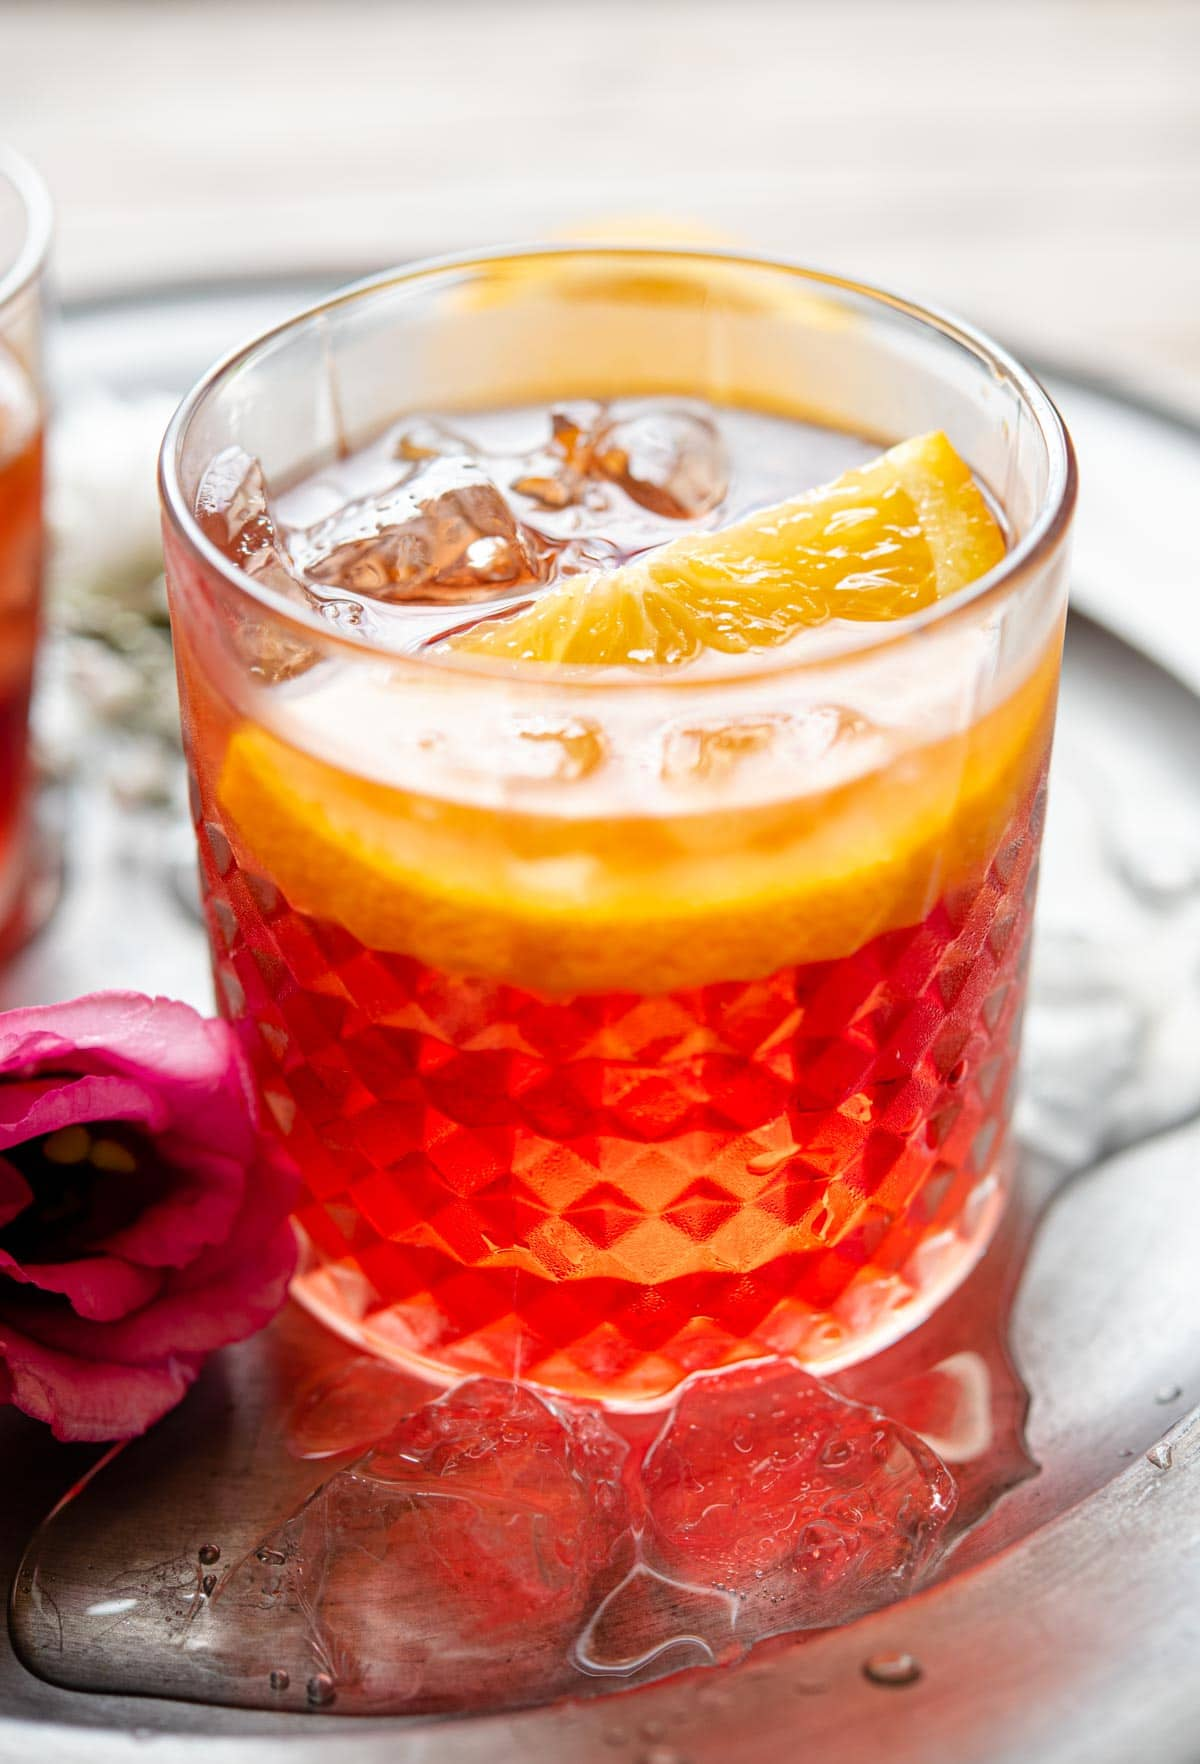 A close up of a negroni cocktail in a glass